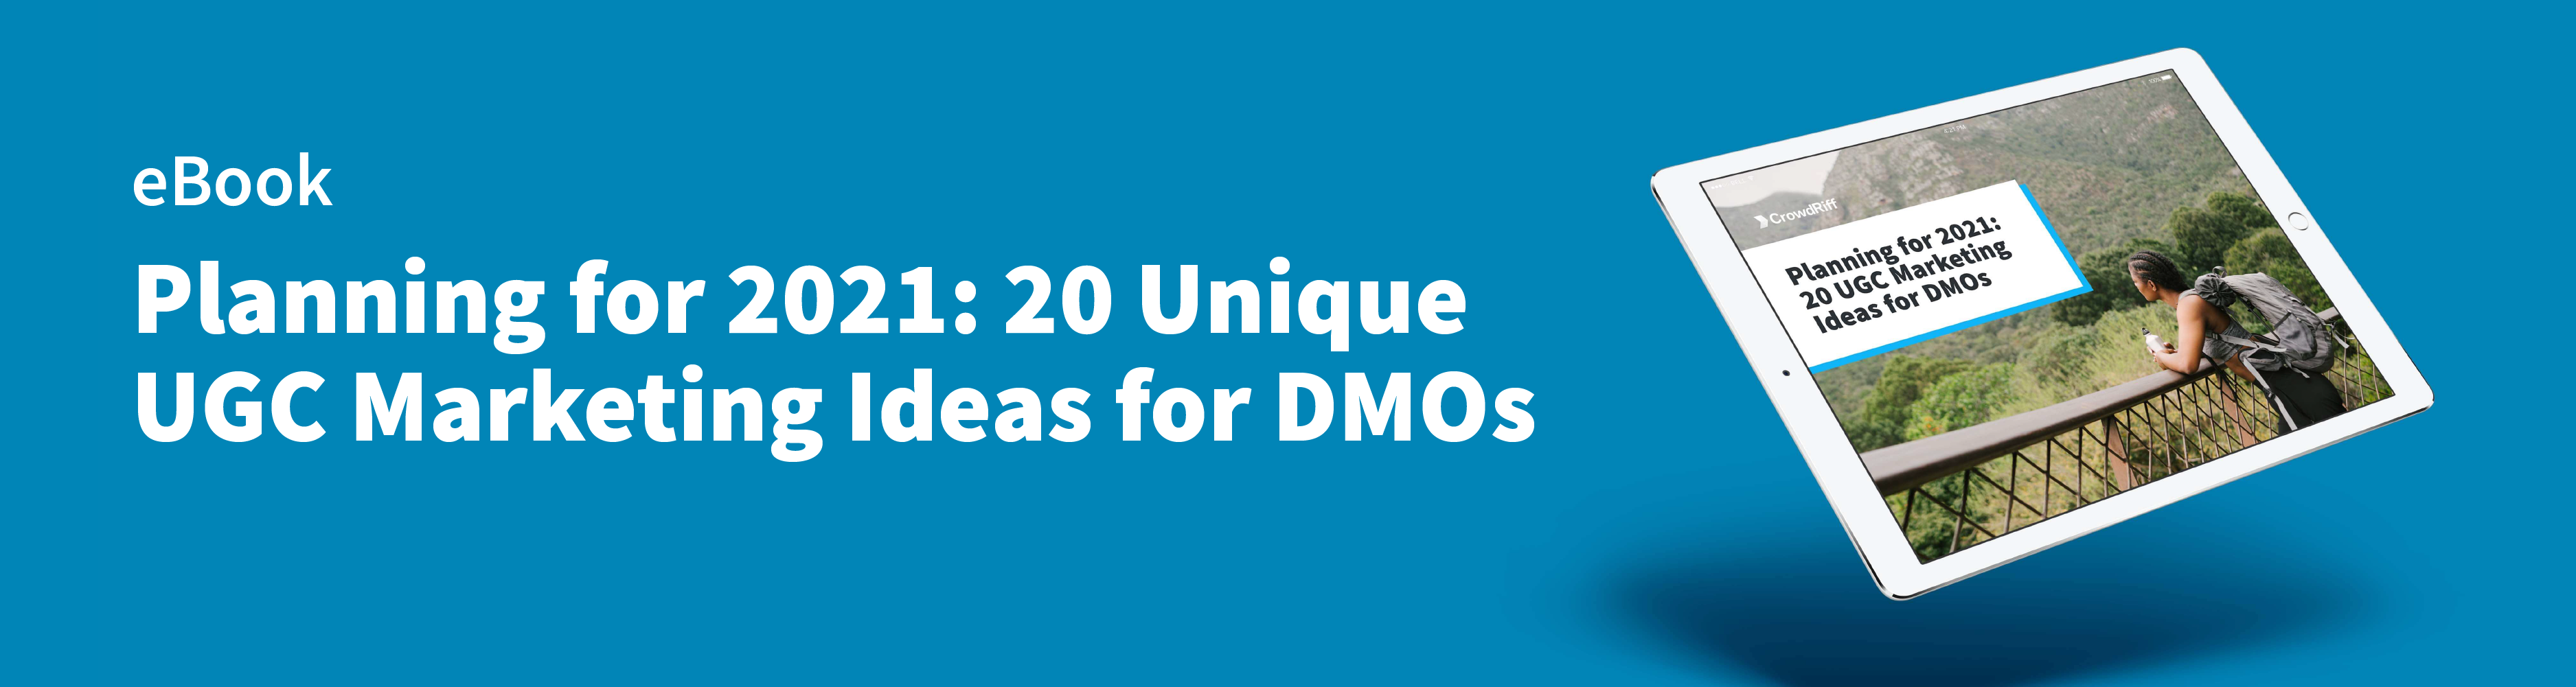 Destination marketer looking for top examples of UGC? Download our ebook: 20  Unique UGC Marketing Ideas for DMOs.